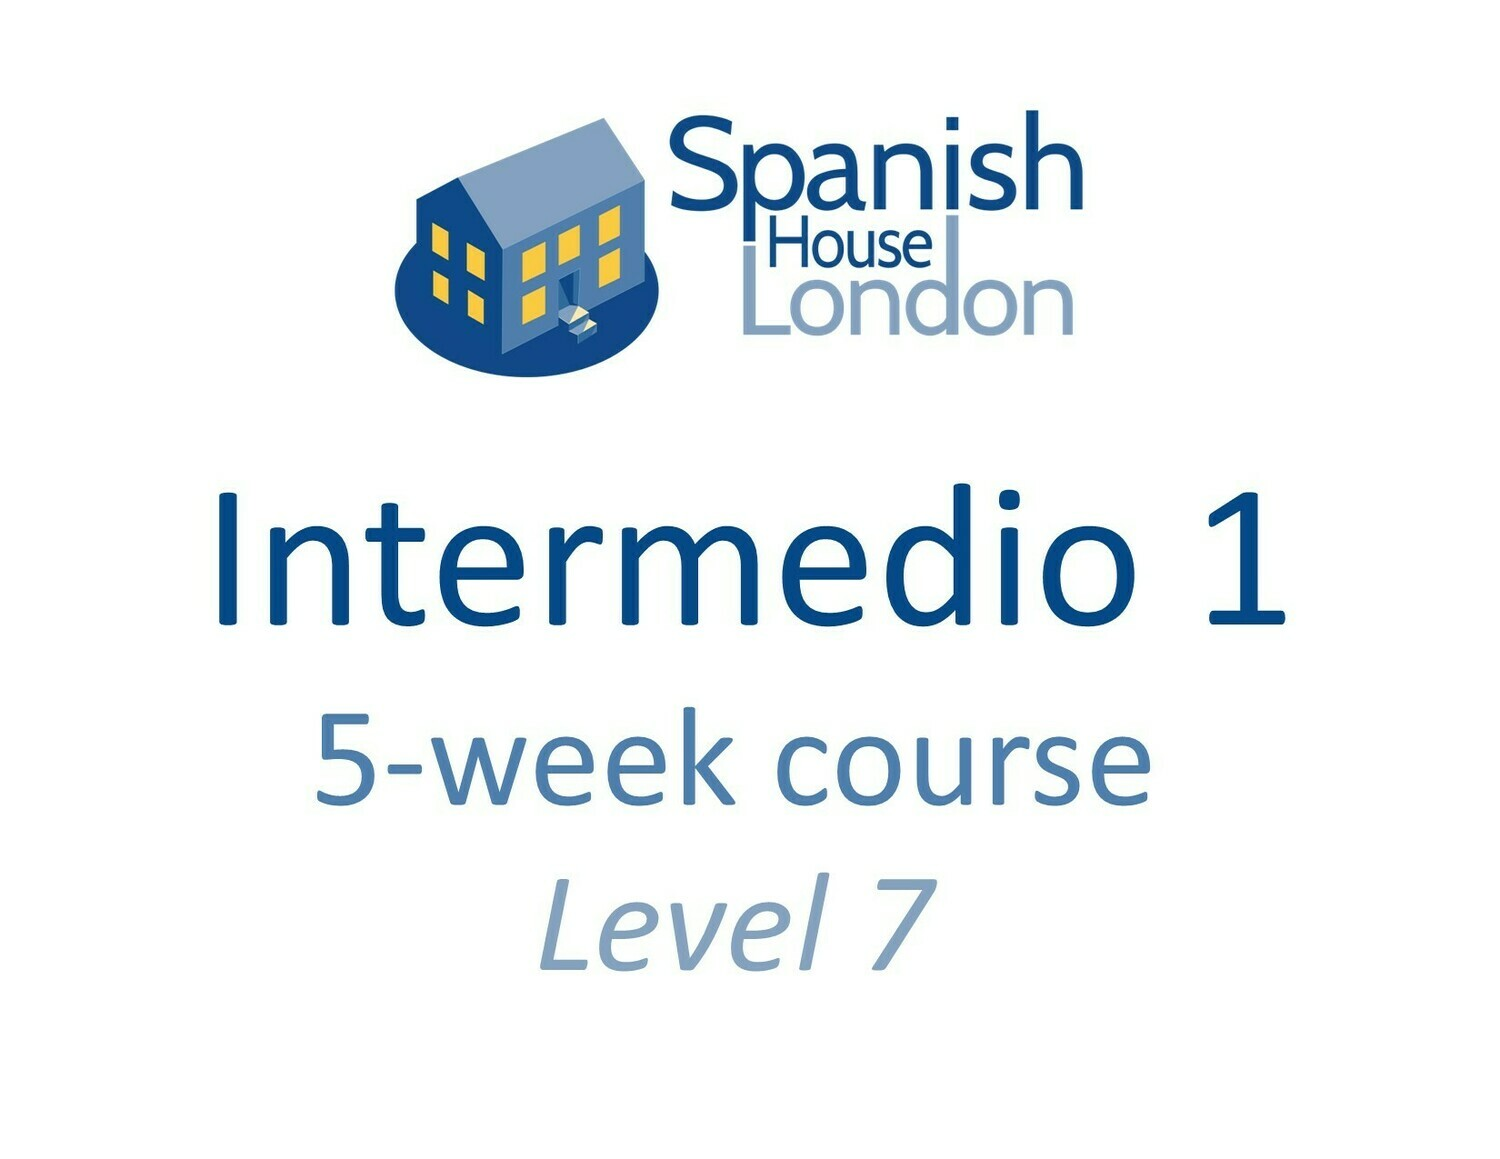 Intermedio 1 Course starting on 10th November at 6pm in Clapham North